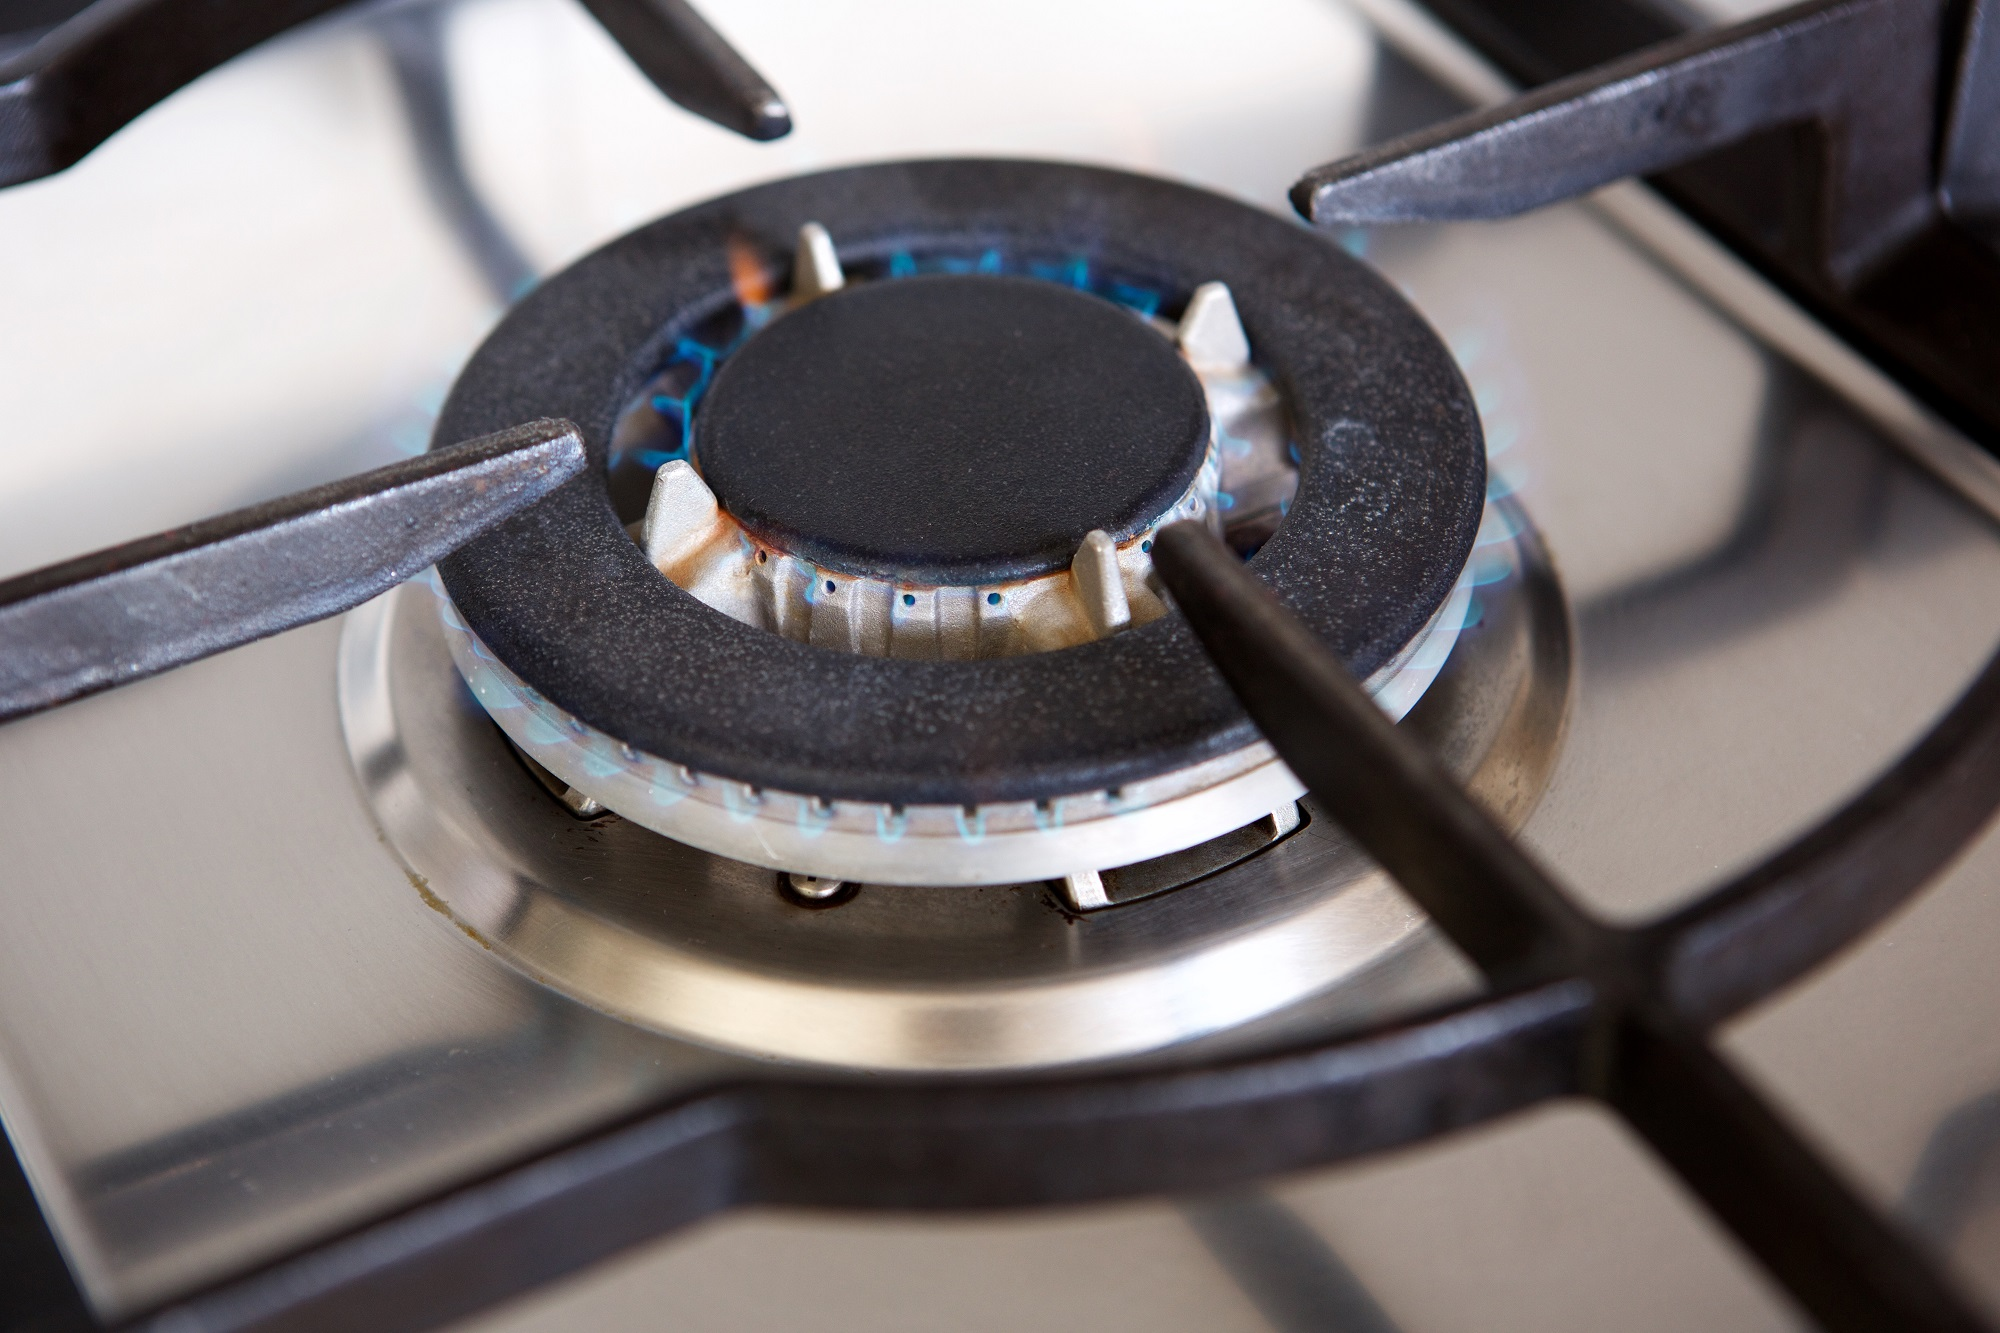 Gas Stove Top Burner With Flame